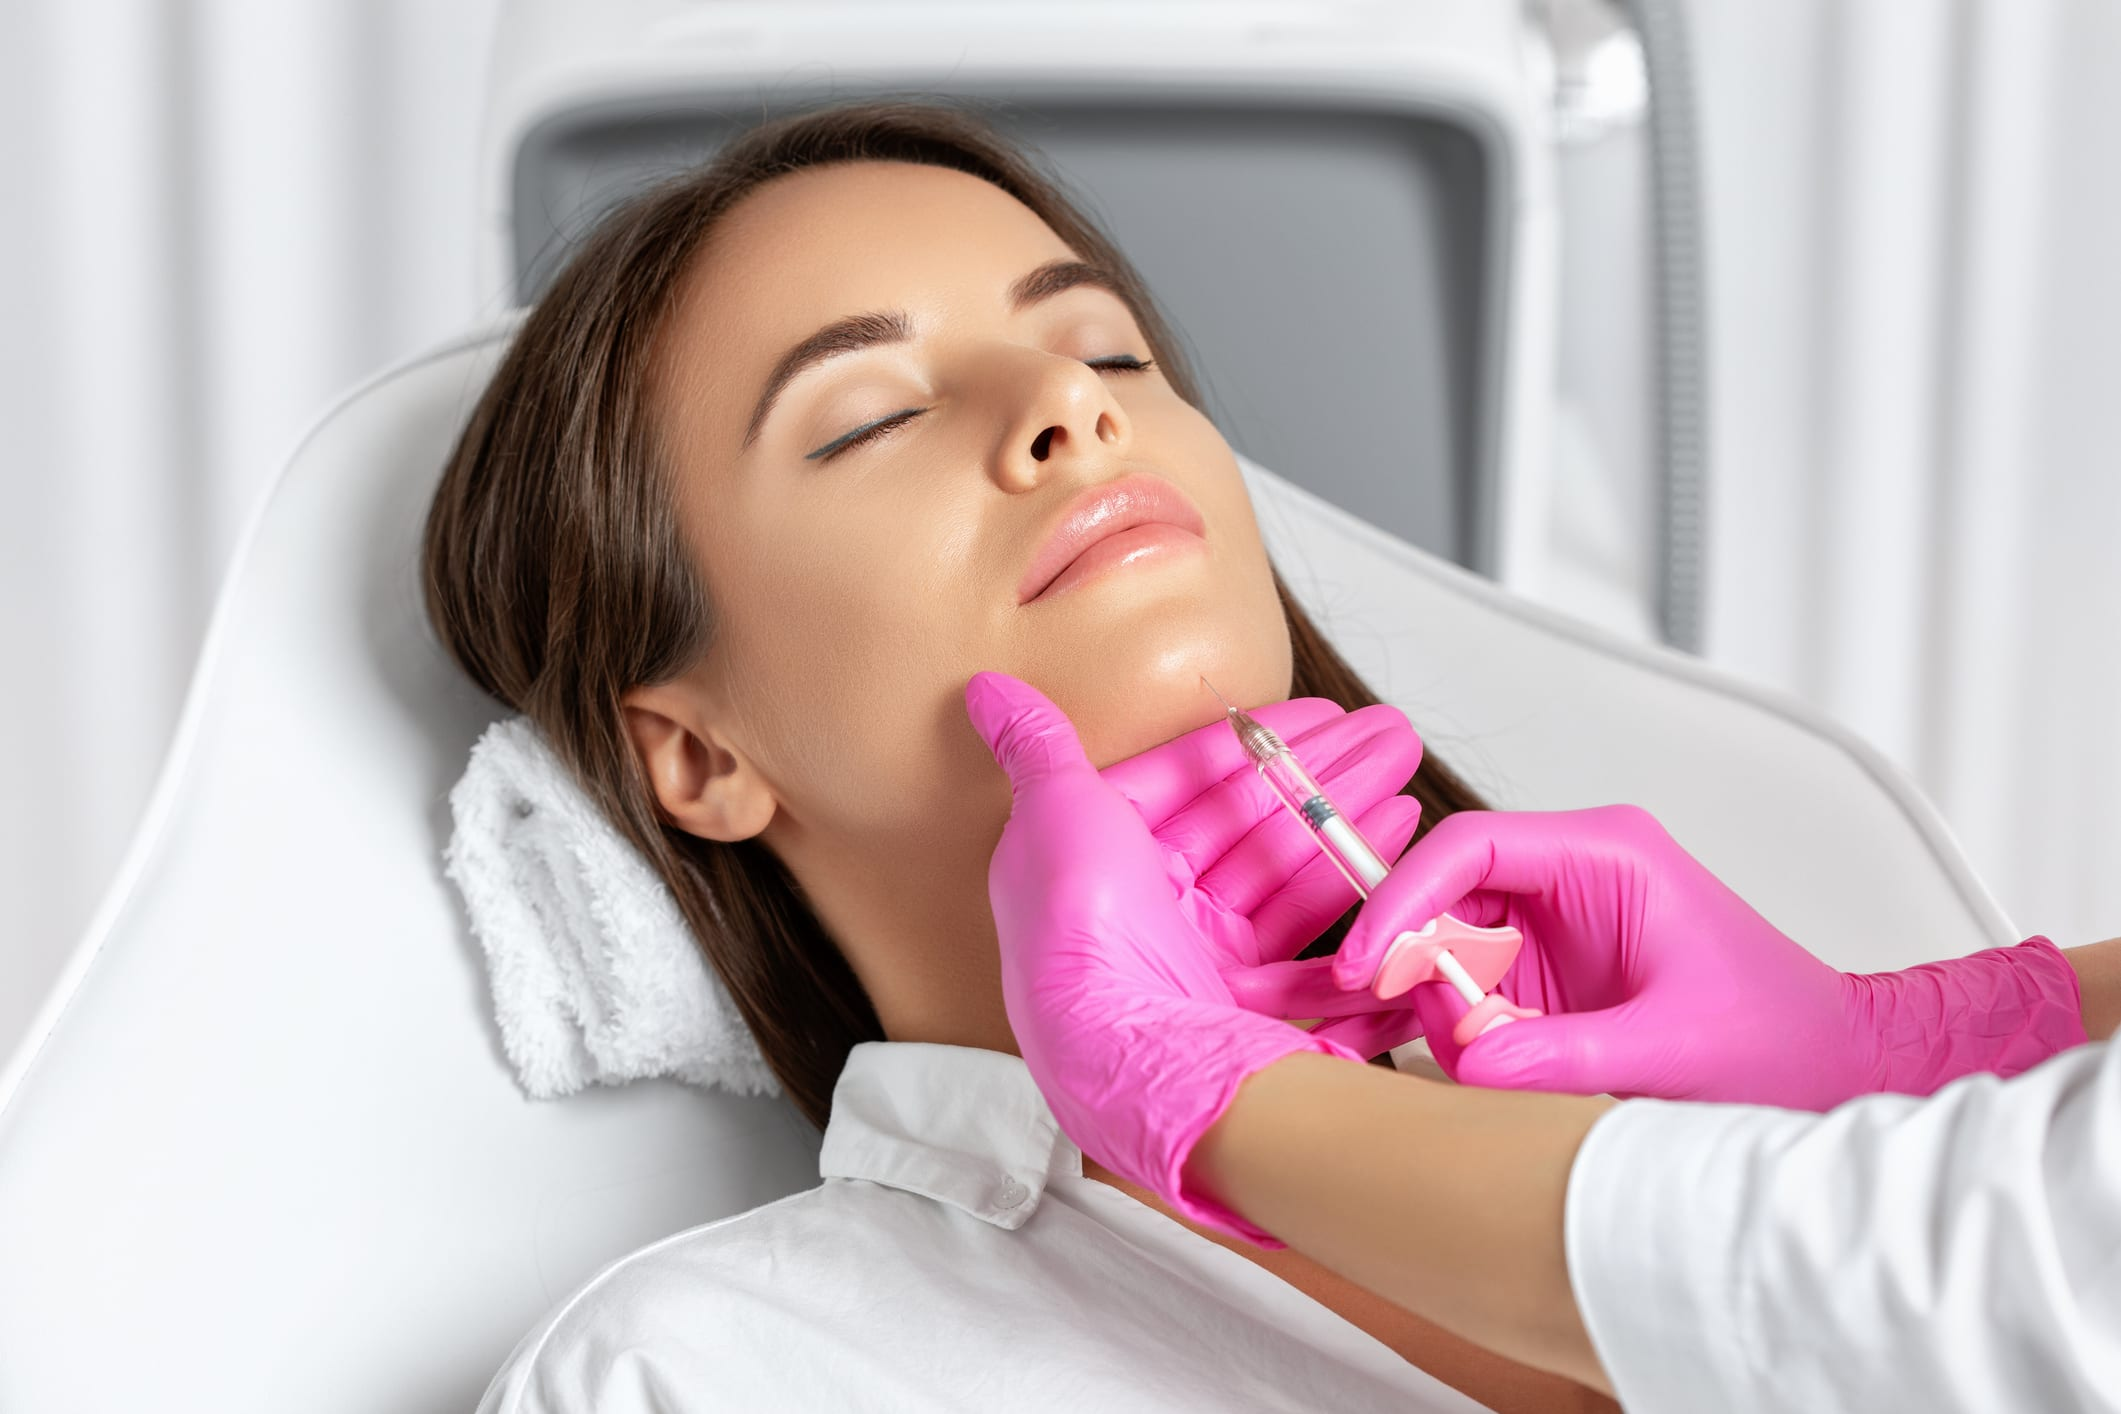 Woman having chin injected with filler